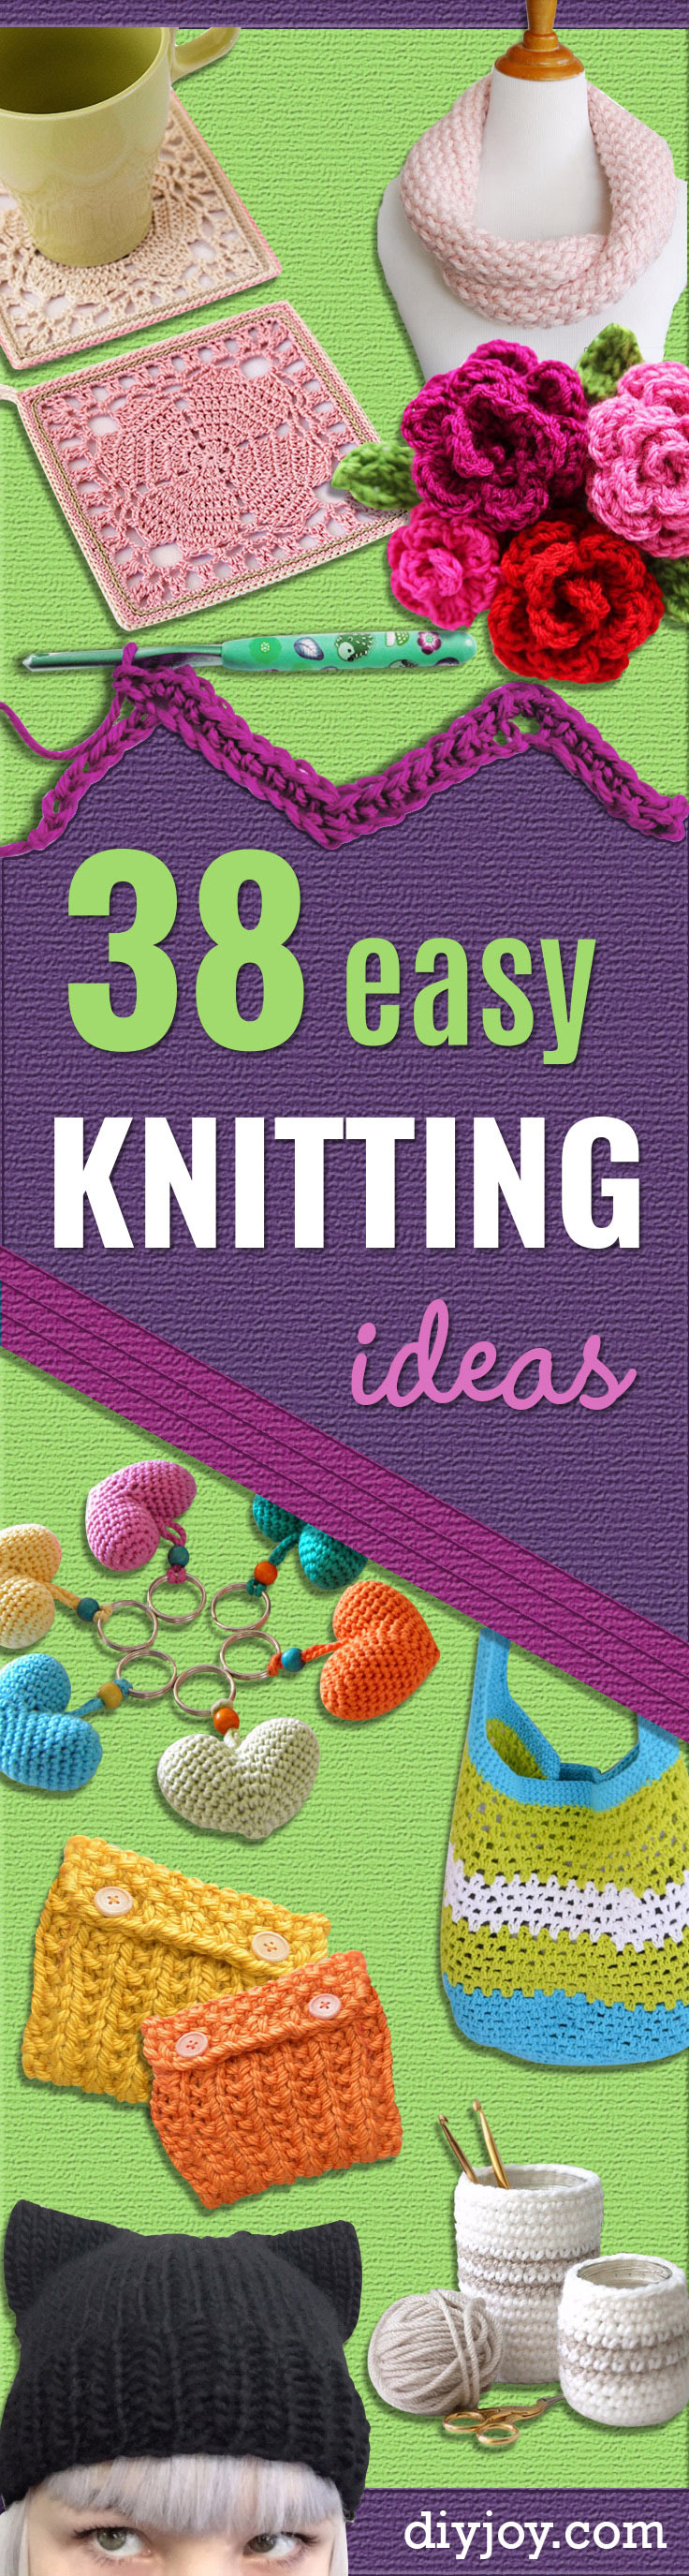 Easy Knitting Projects For Gifts : Easy knitting ideas diy joy